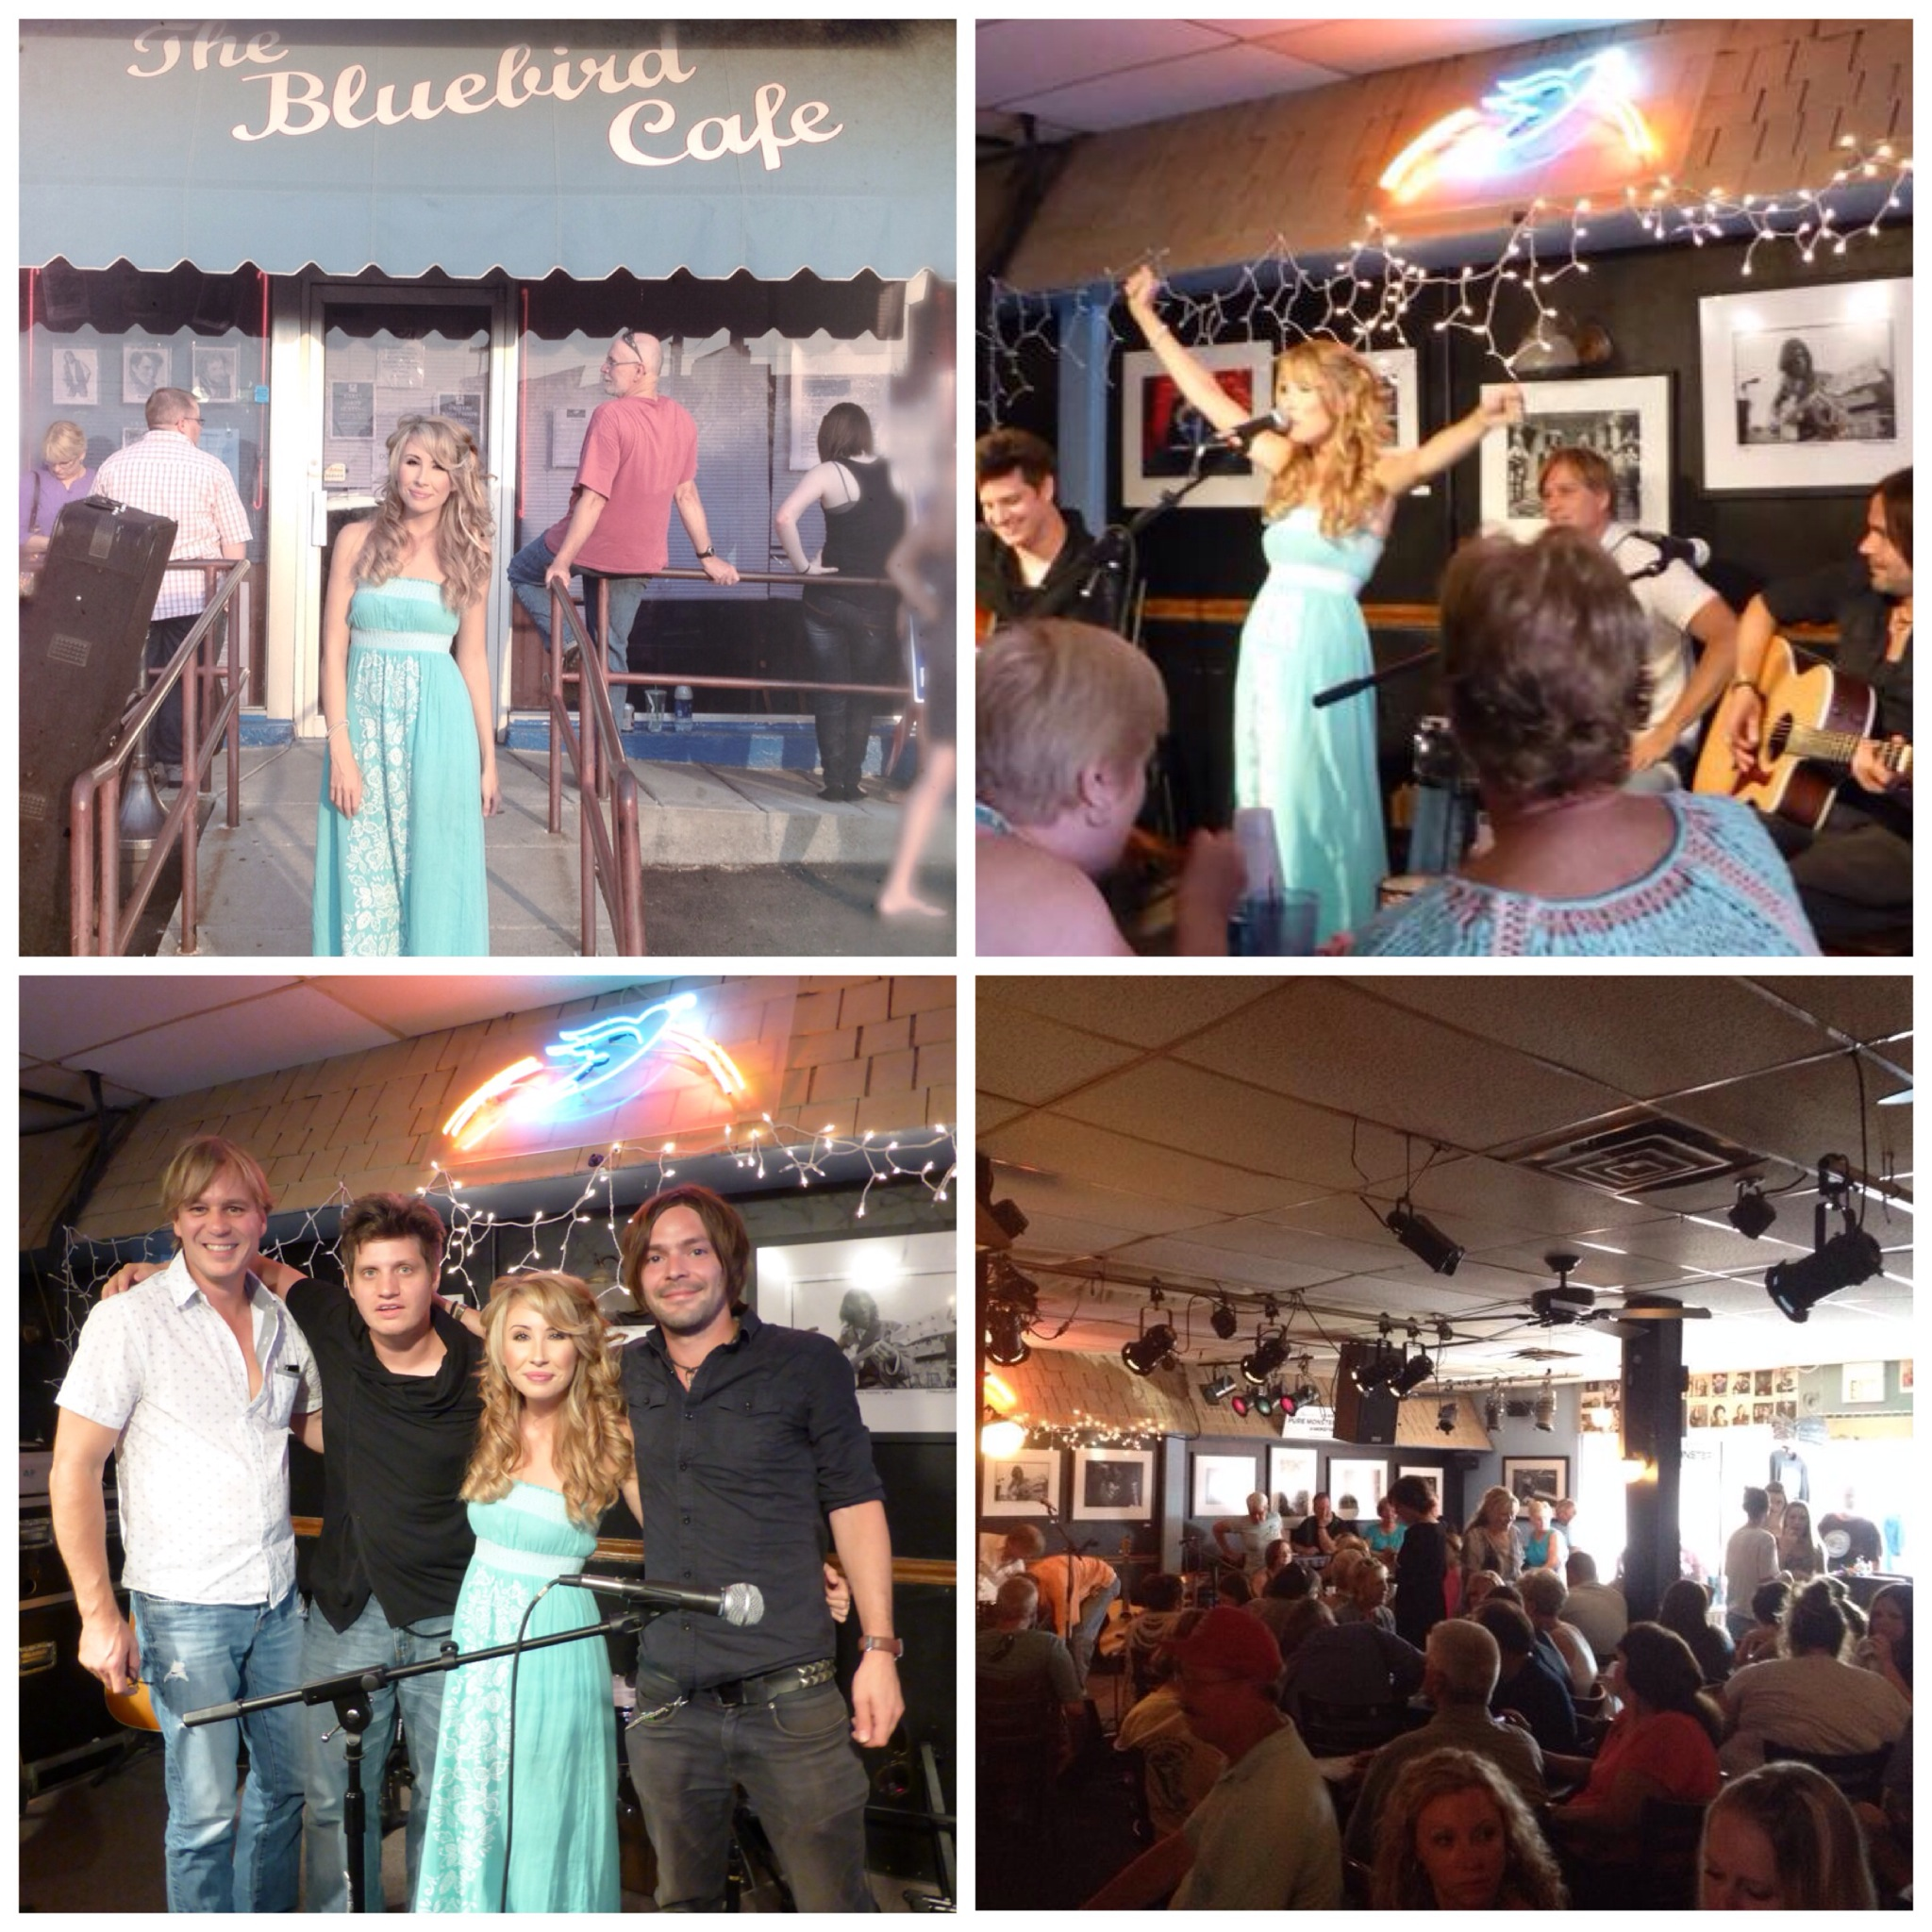 The Bluebird Cafe - Nashville, TN.